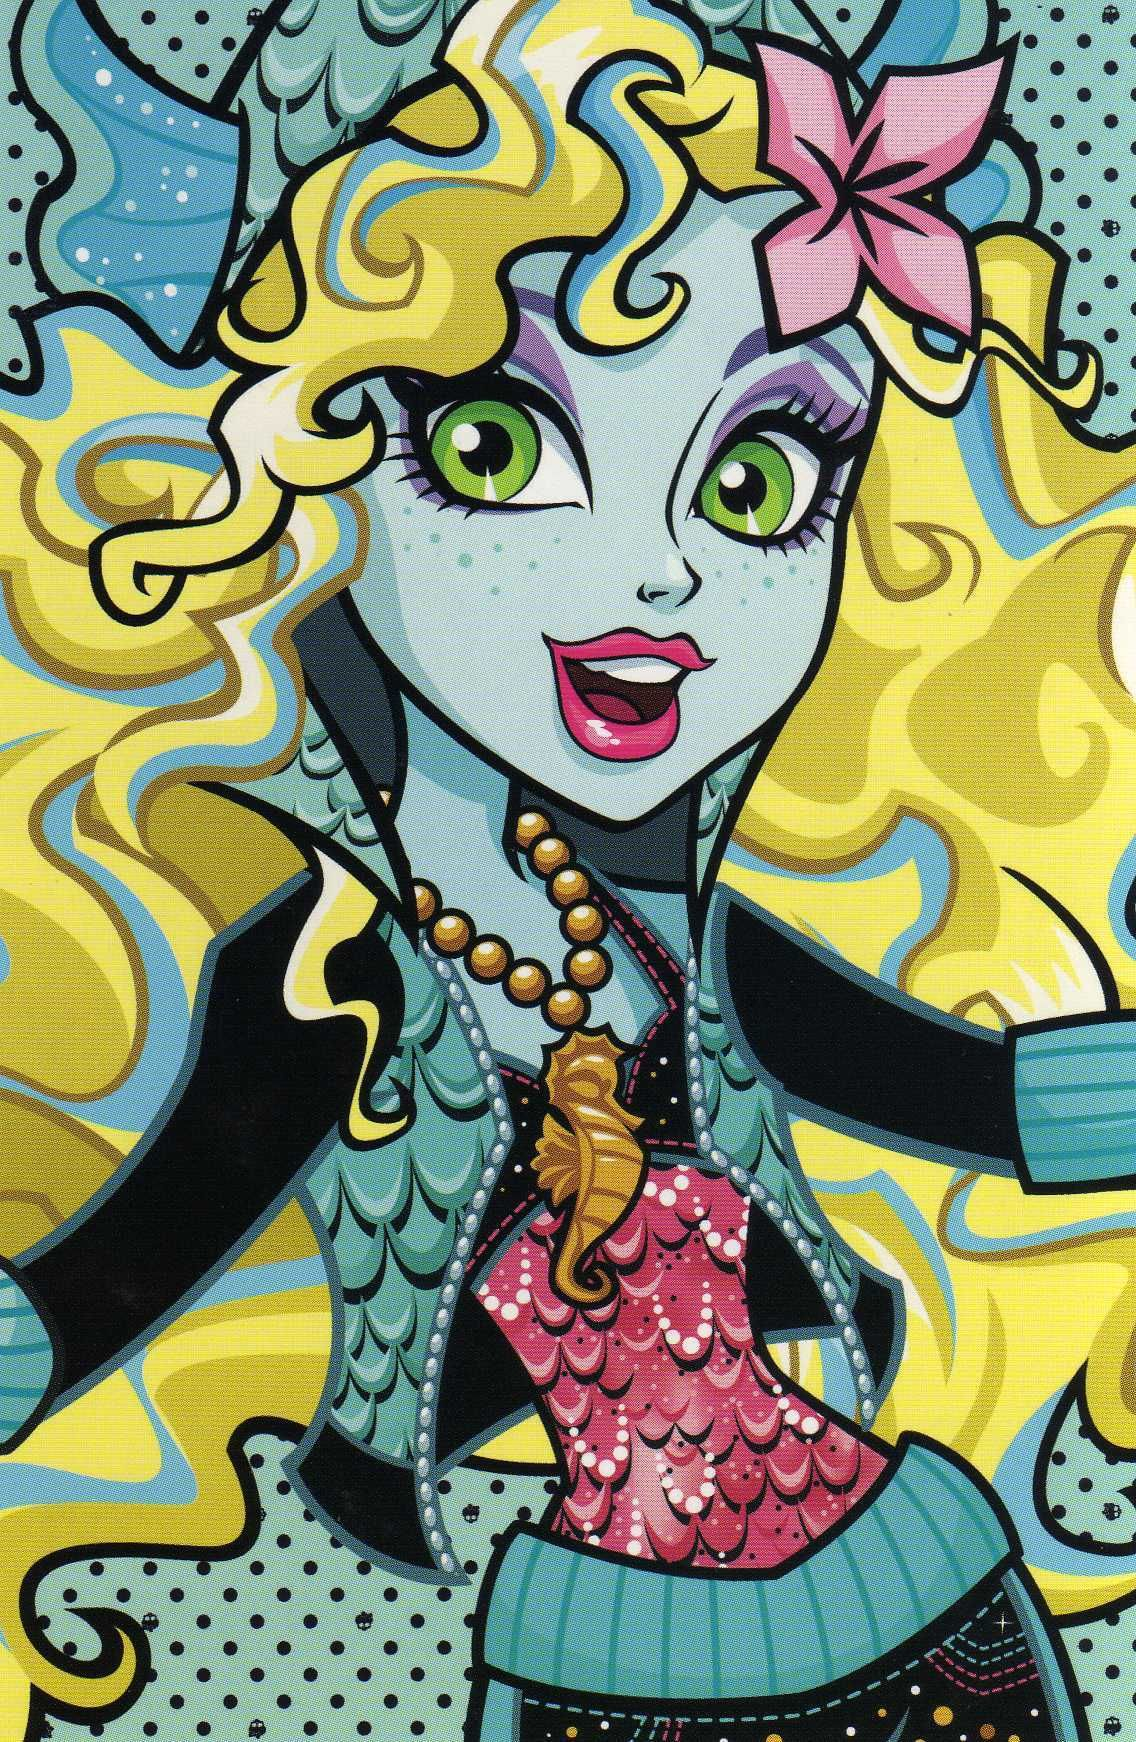 Me And Lagoona Blue Have A Secret She Says I Can Tell My Friends But Not The Headmaster Well You Know That Lagoonas Dad Was Sea Monster Mom